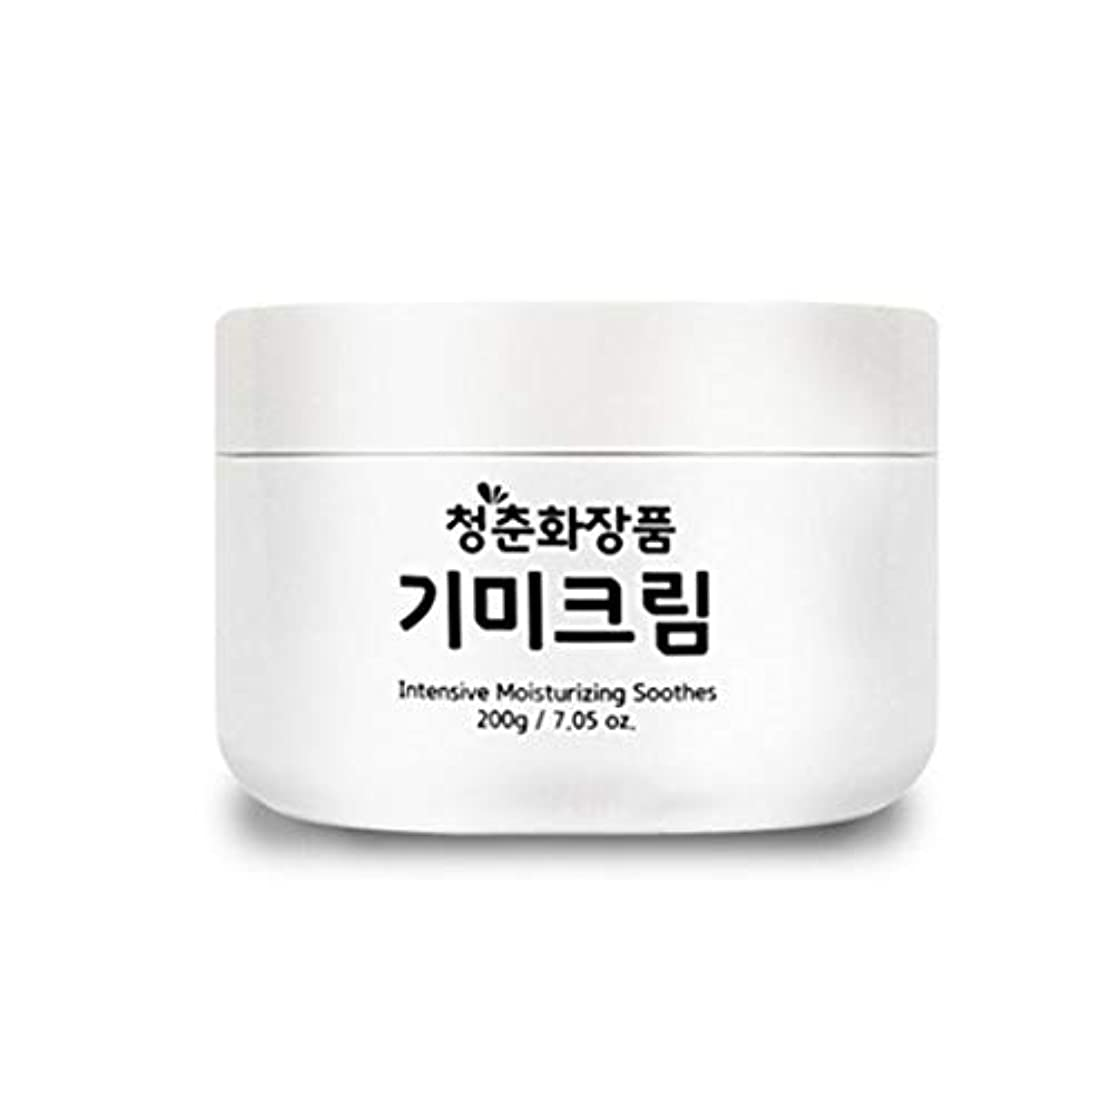 青春化粧品シミクリーム200g美白くすみ韓国コスメ、Chungchoon Intensive Moisturizing Soothes Cream 200g Melasma Mitigation Cream Korean...